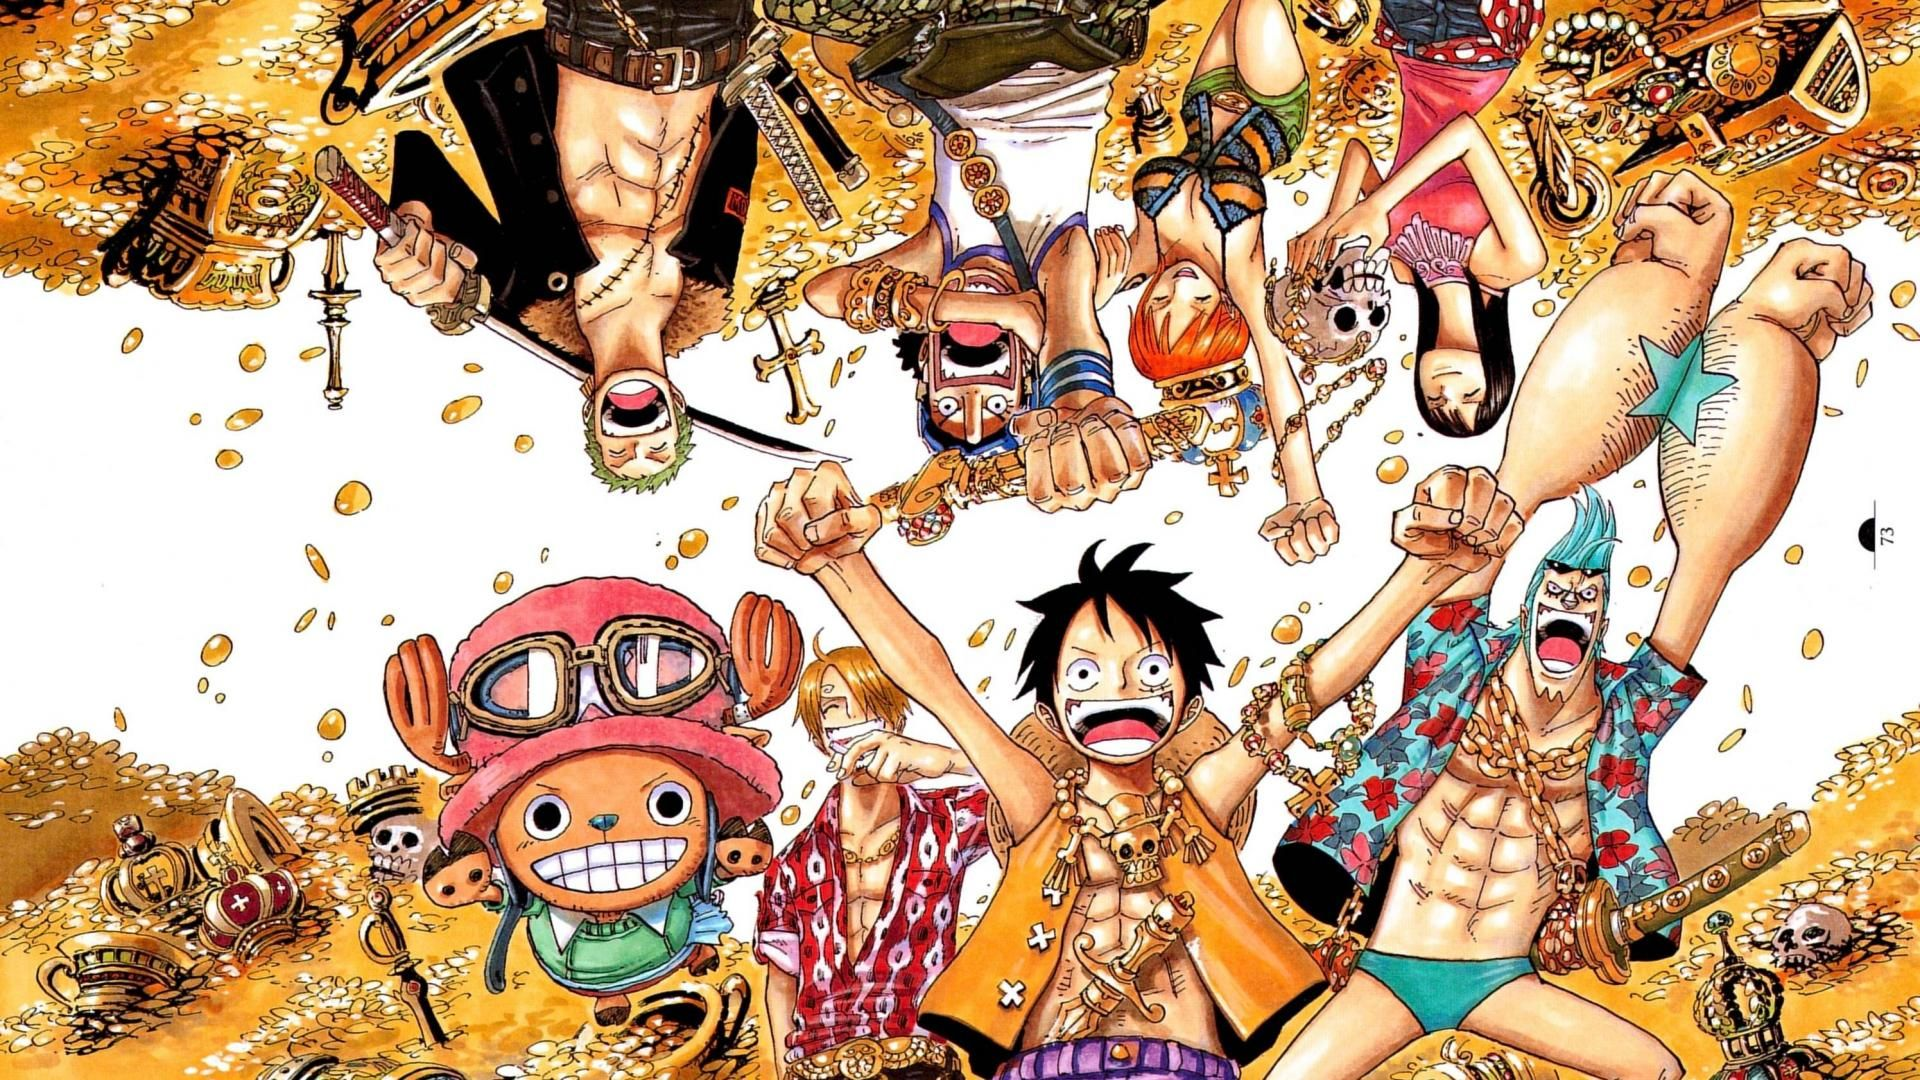 Wallpaper Anime One Piece New World One Piece Wallpaper 1920x1080 On Wallpaperget Com One Piece Ne In 2020 One Piece Wallpaper Iphone One Piece Anime Anime Wallpaper